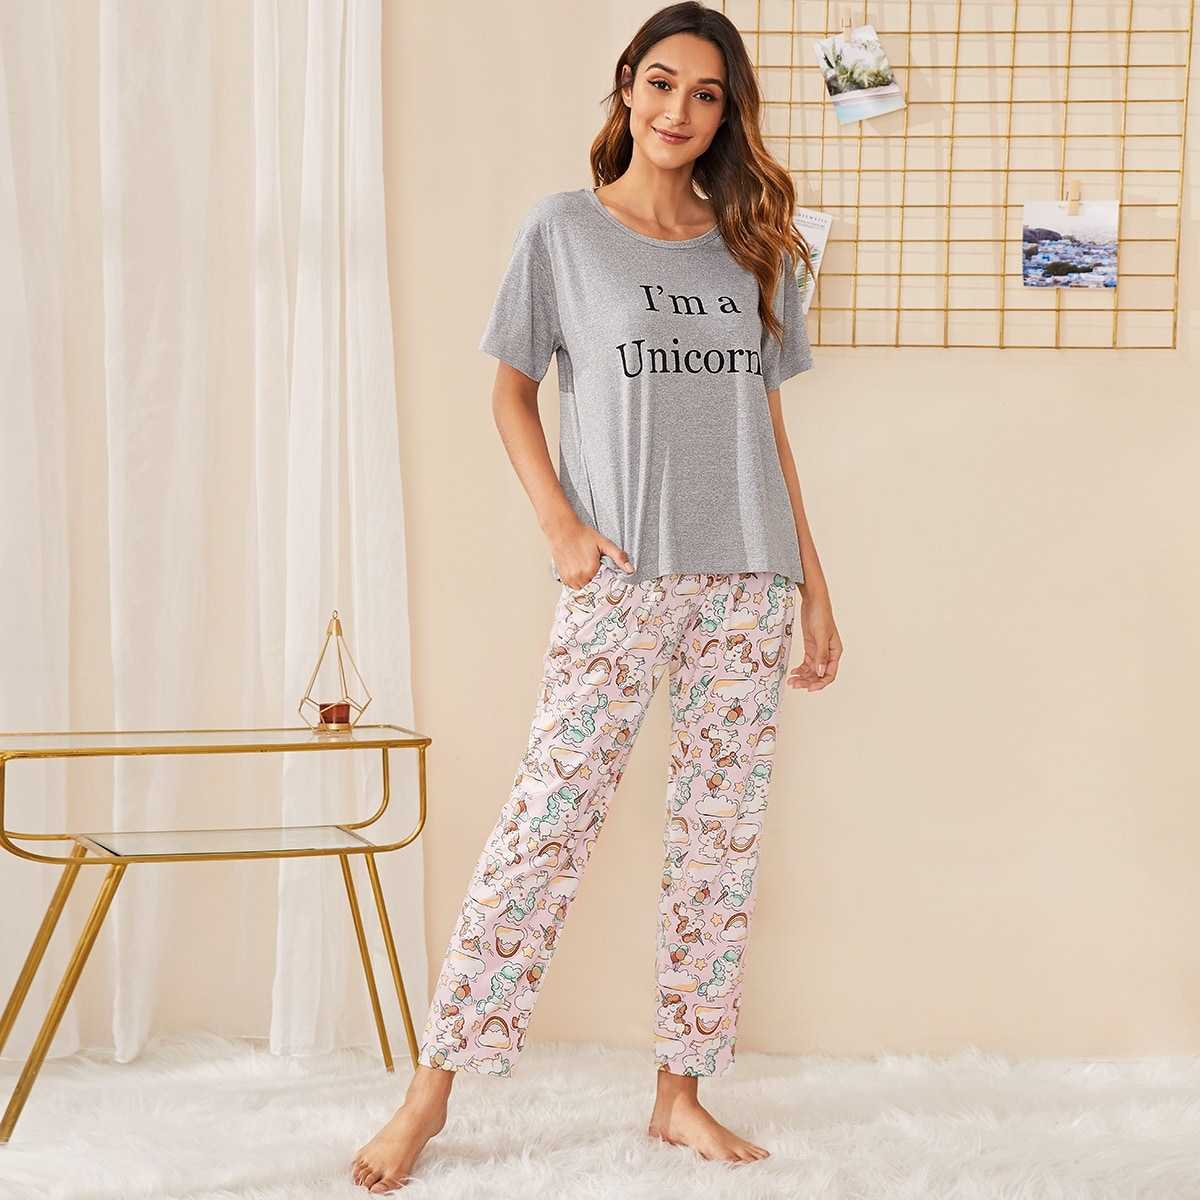 Unicorn & Letter Print Pajama Set in Multicolor by ROMWE on GOOFASH